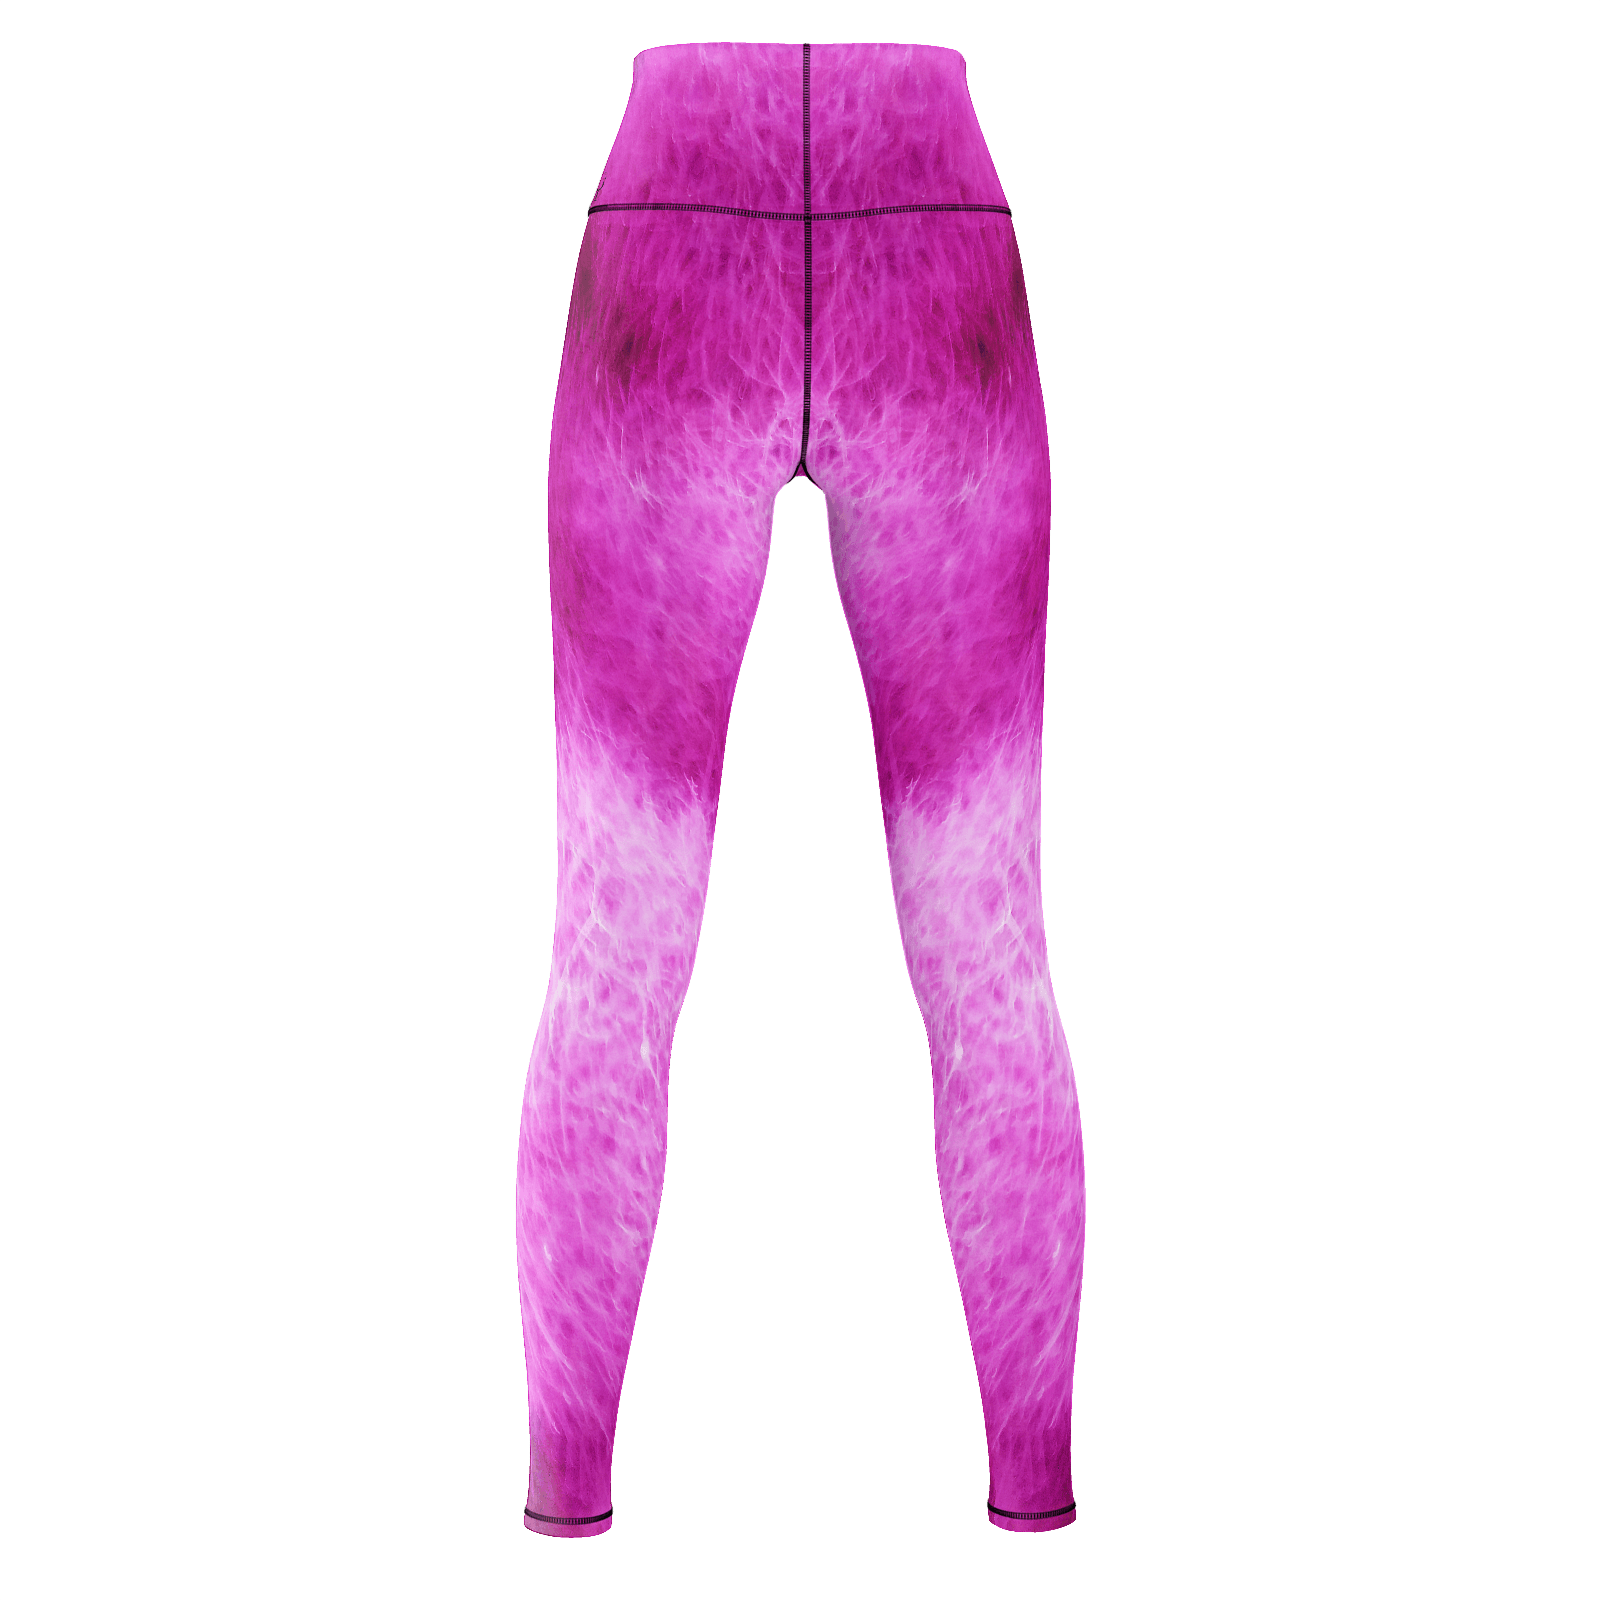 Yoga Sexy PinkSeuss Yoga Pants - Yoga Sexy